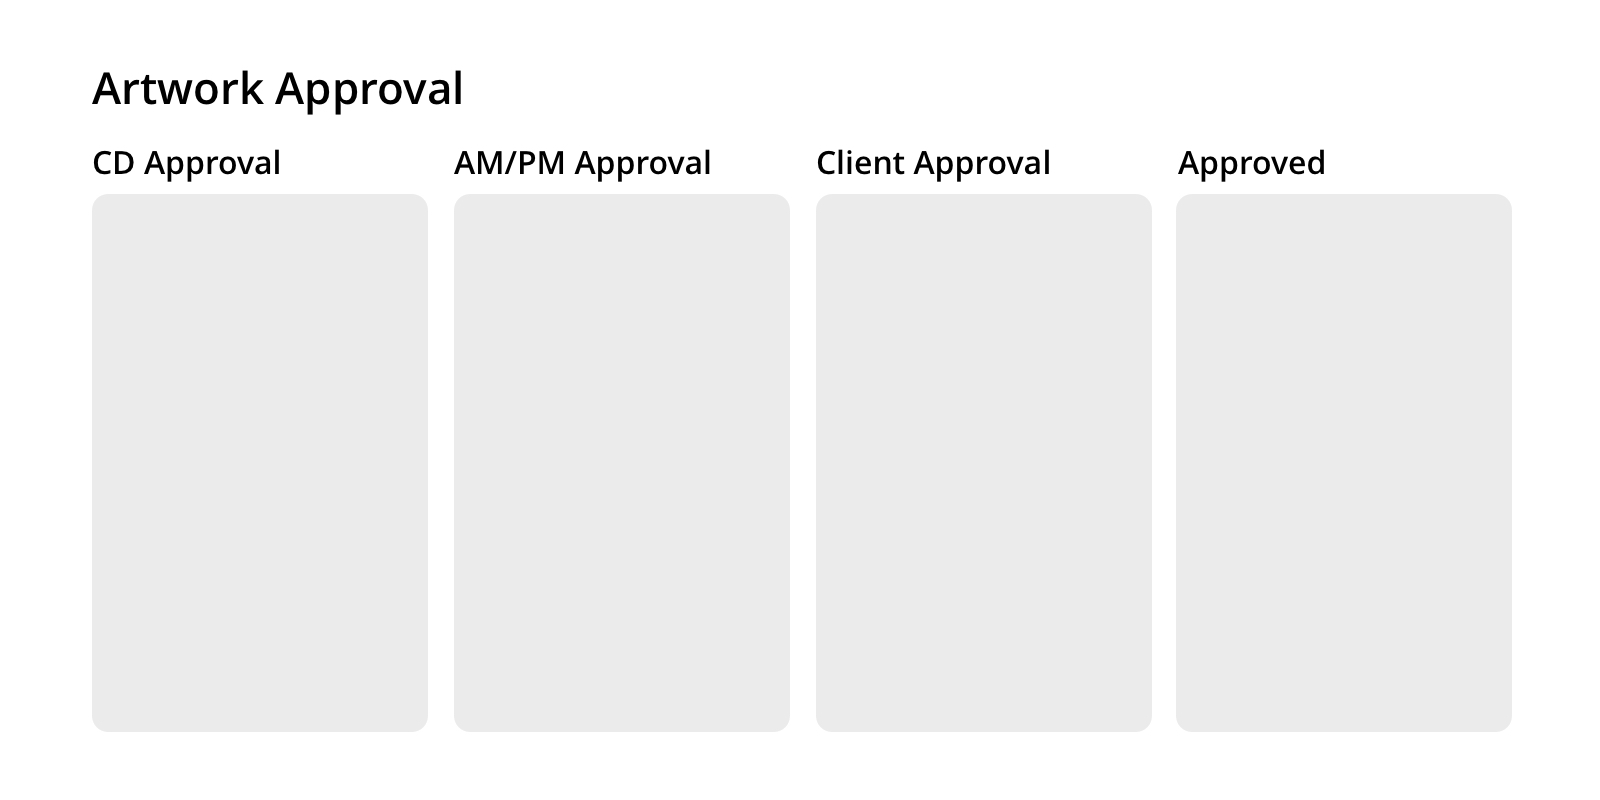 Artwork Approval Workflow Image